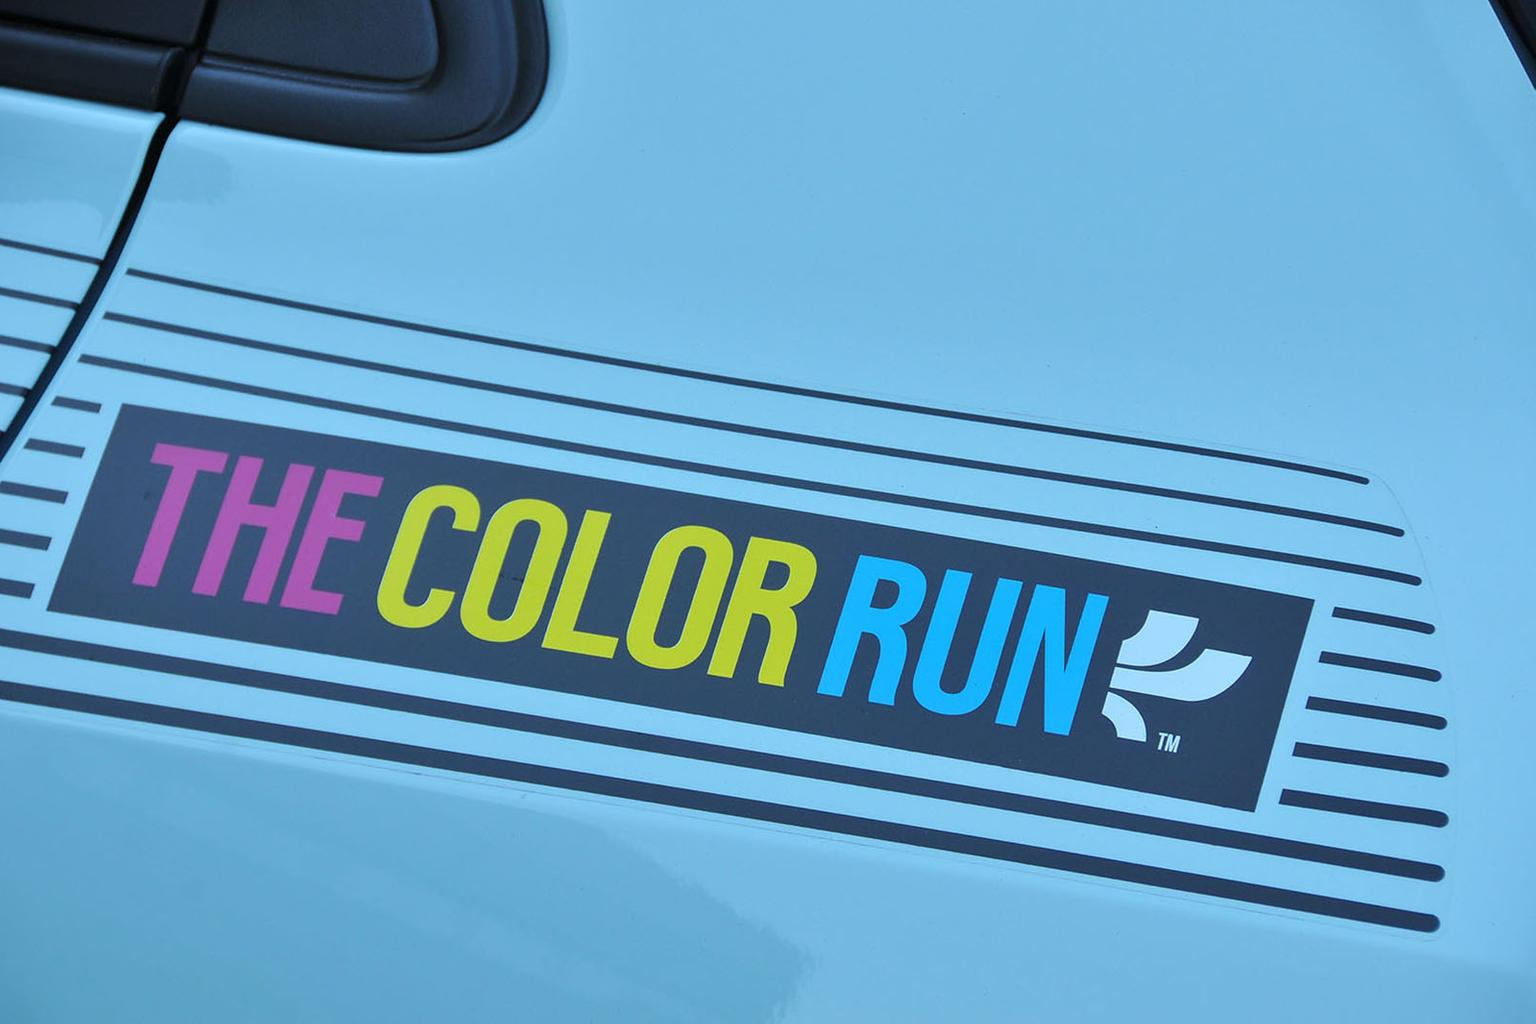 2016 Renault Twingo 1.0 70 The Colour Run review